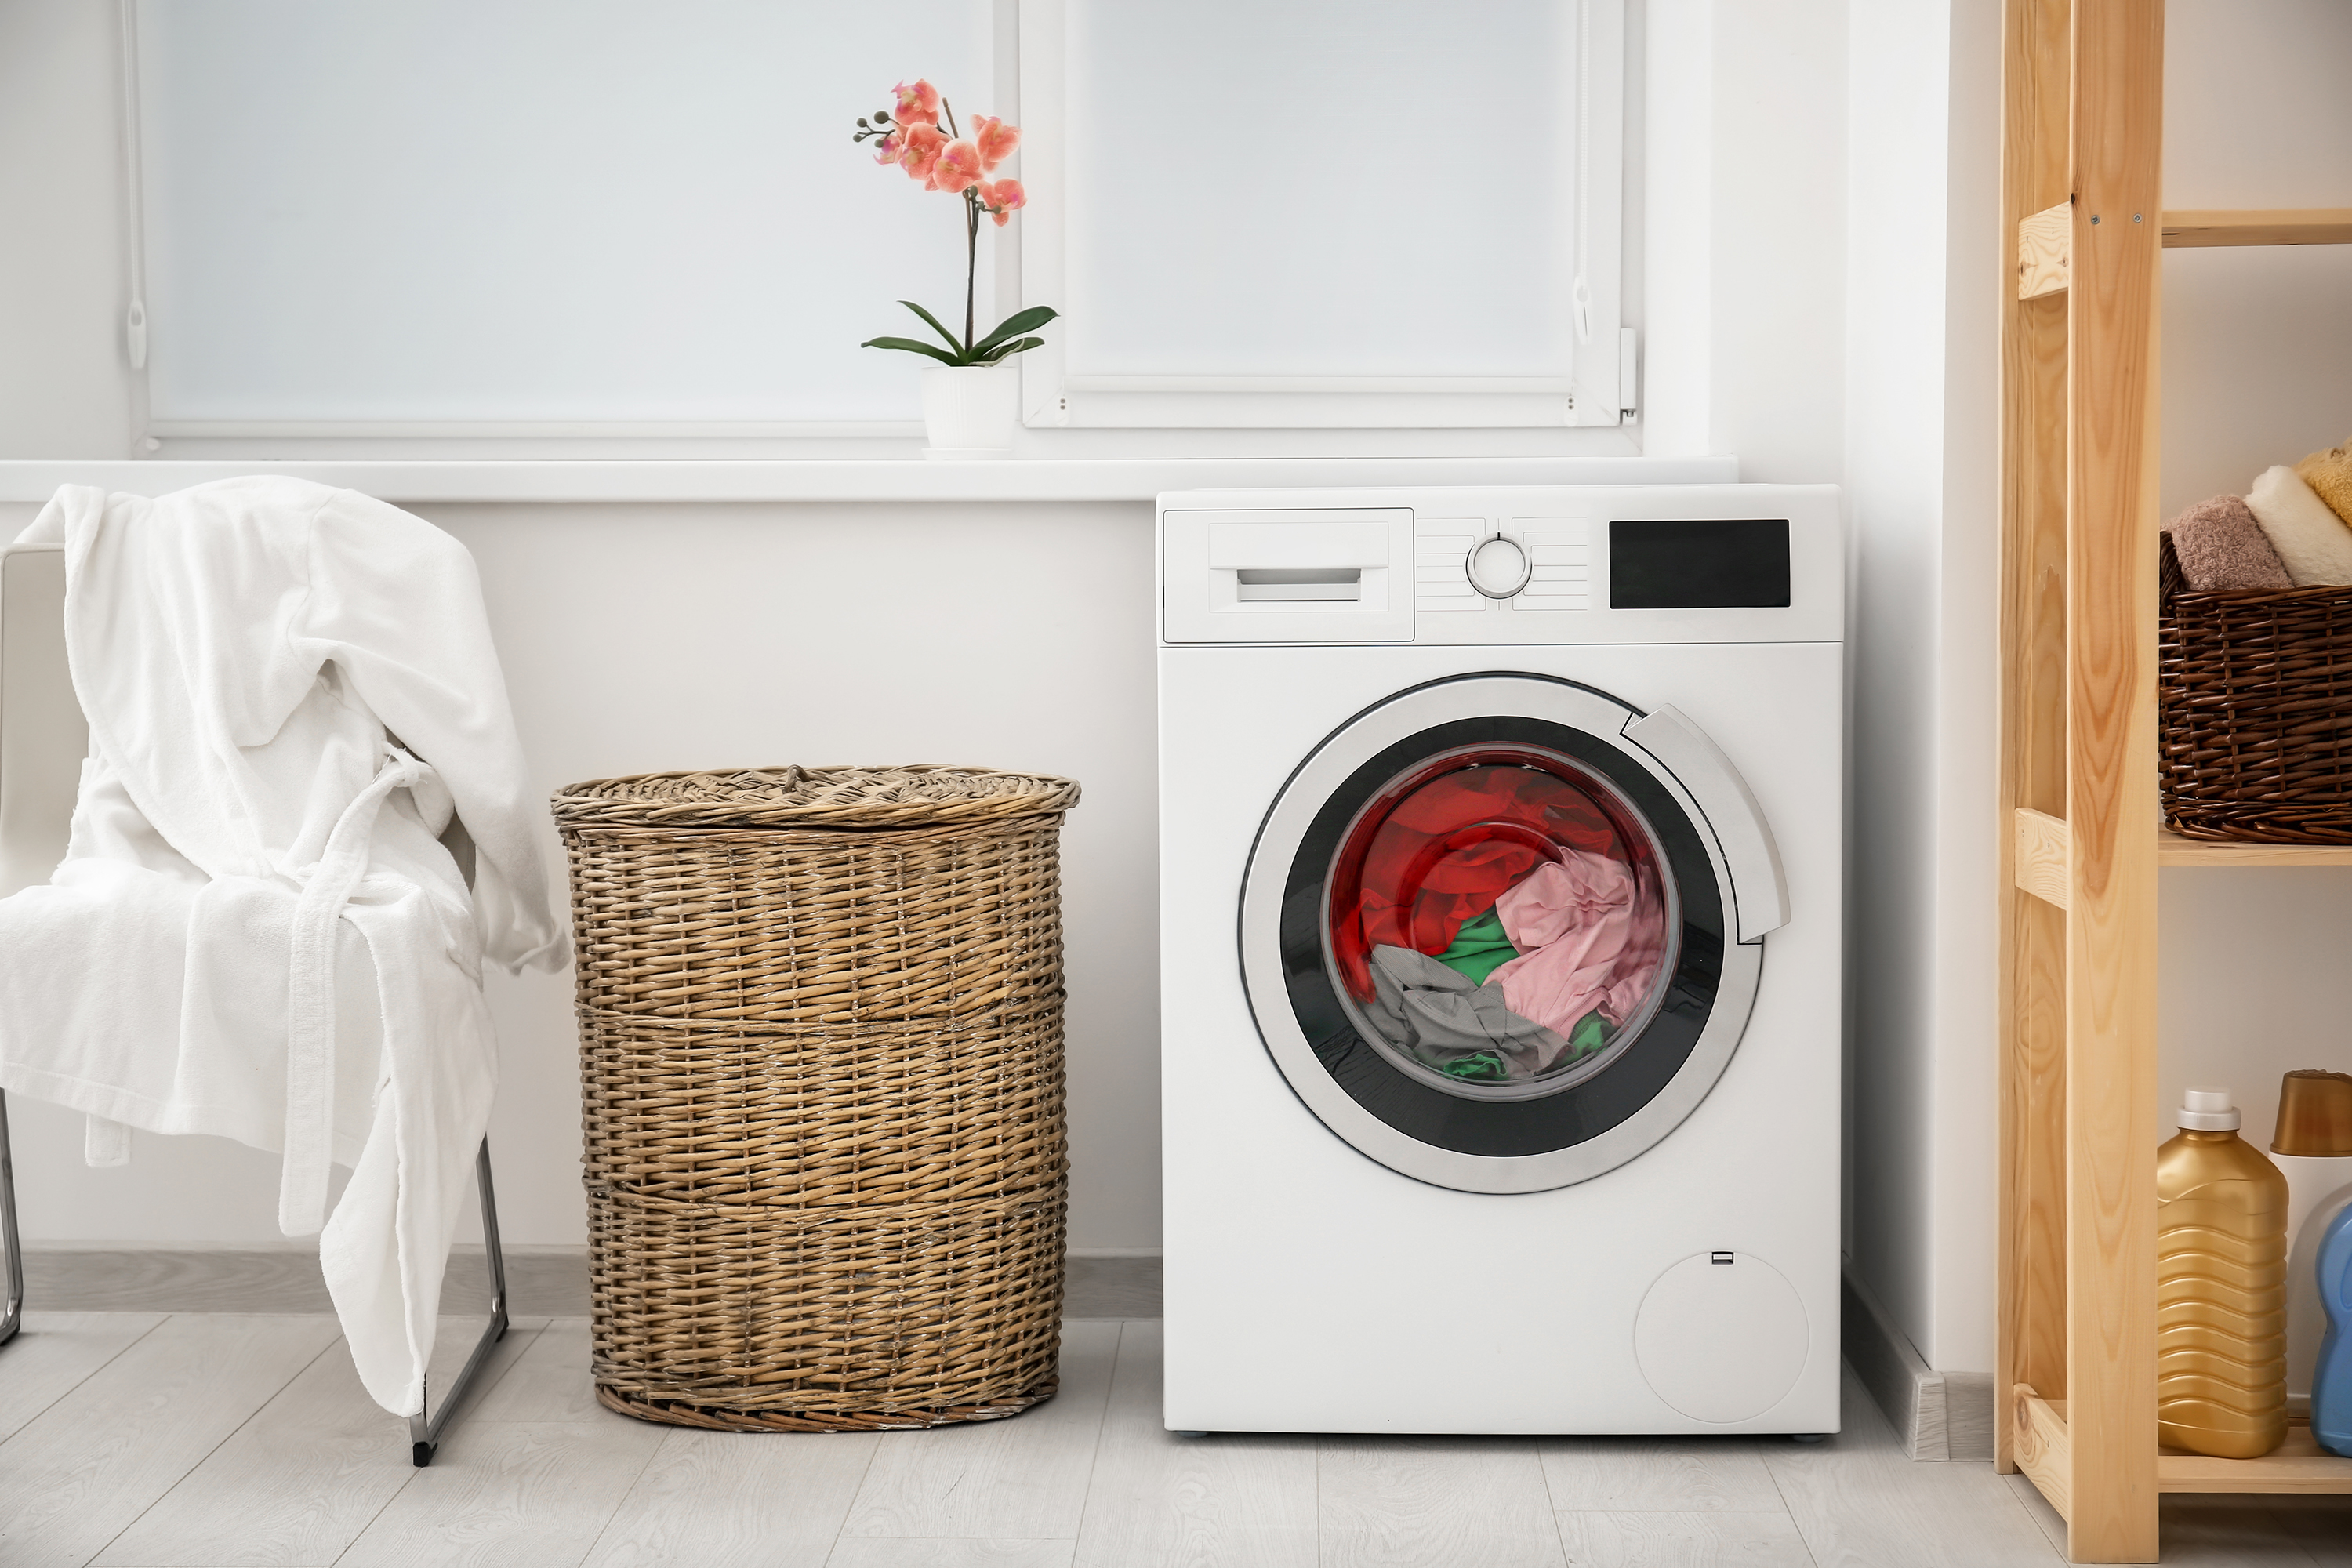 Whirlpool Smart Washer Dryer CES 2019 | Apartment Therapy